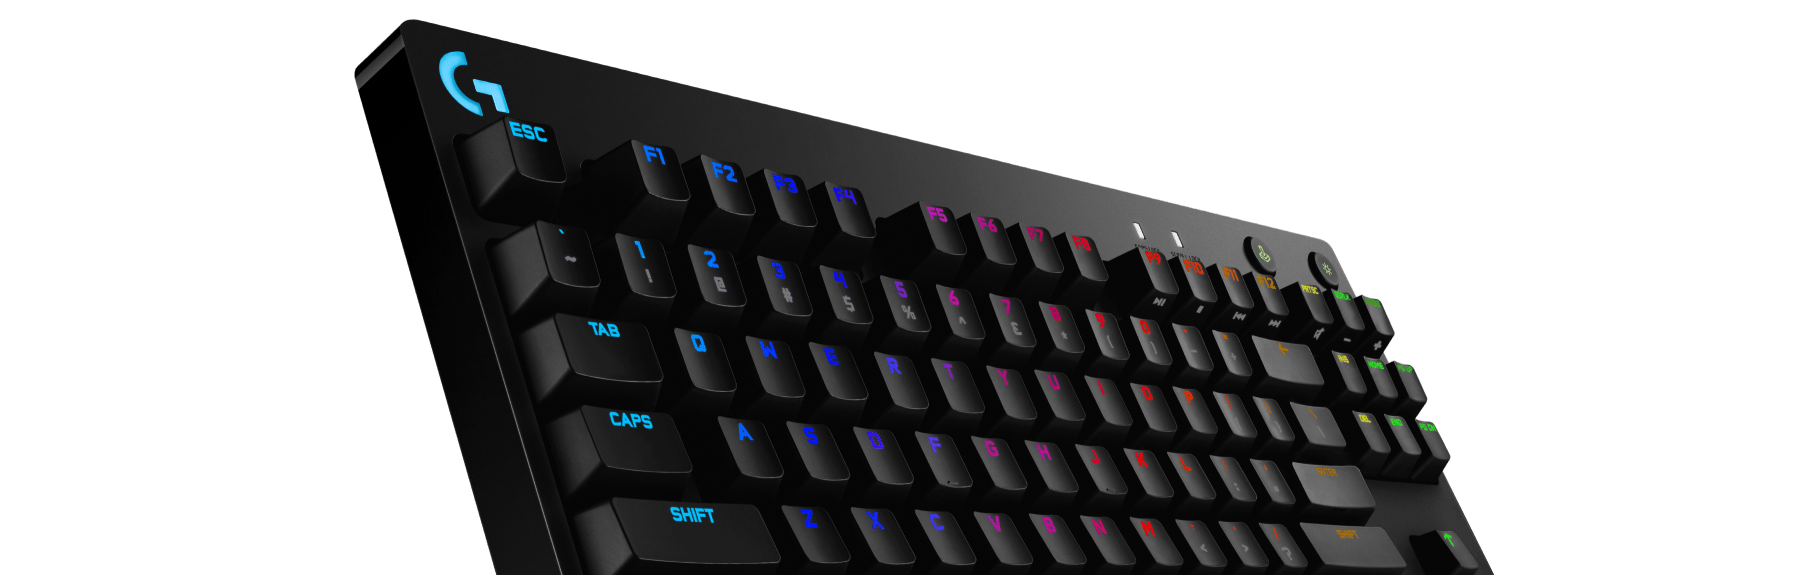 Mechanische Pro Gaming-Tastatur